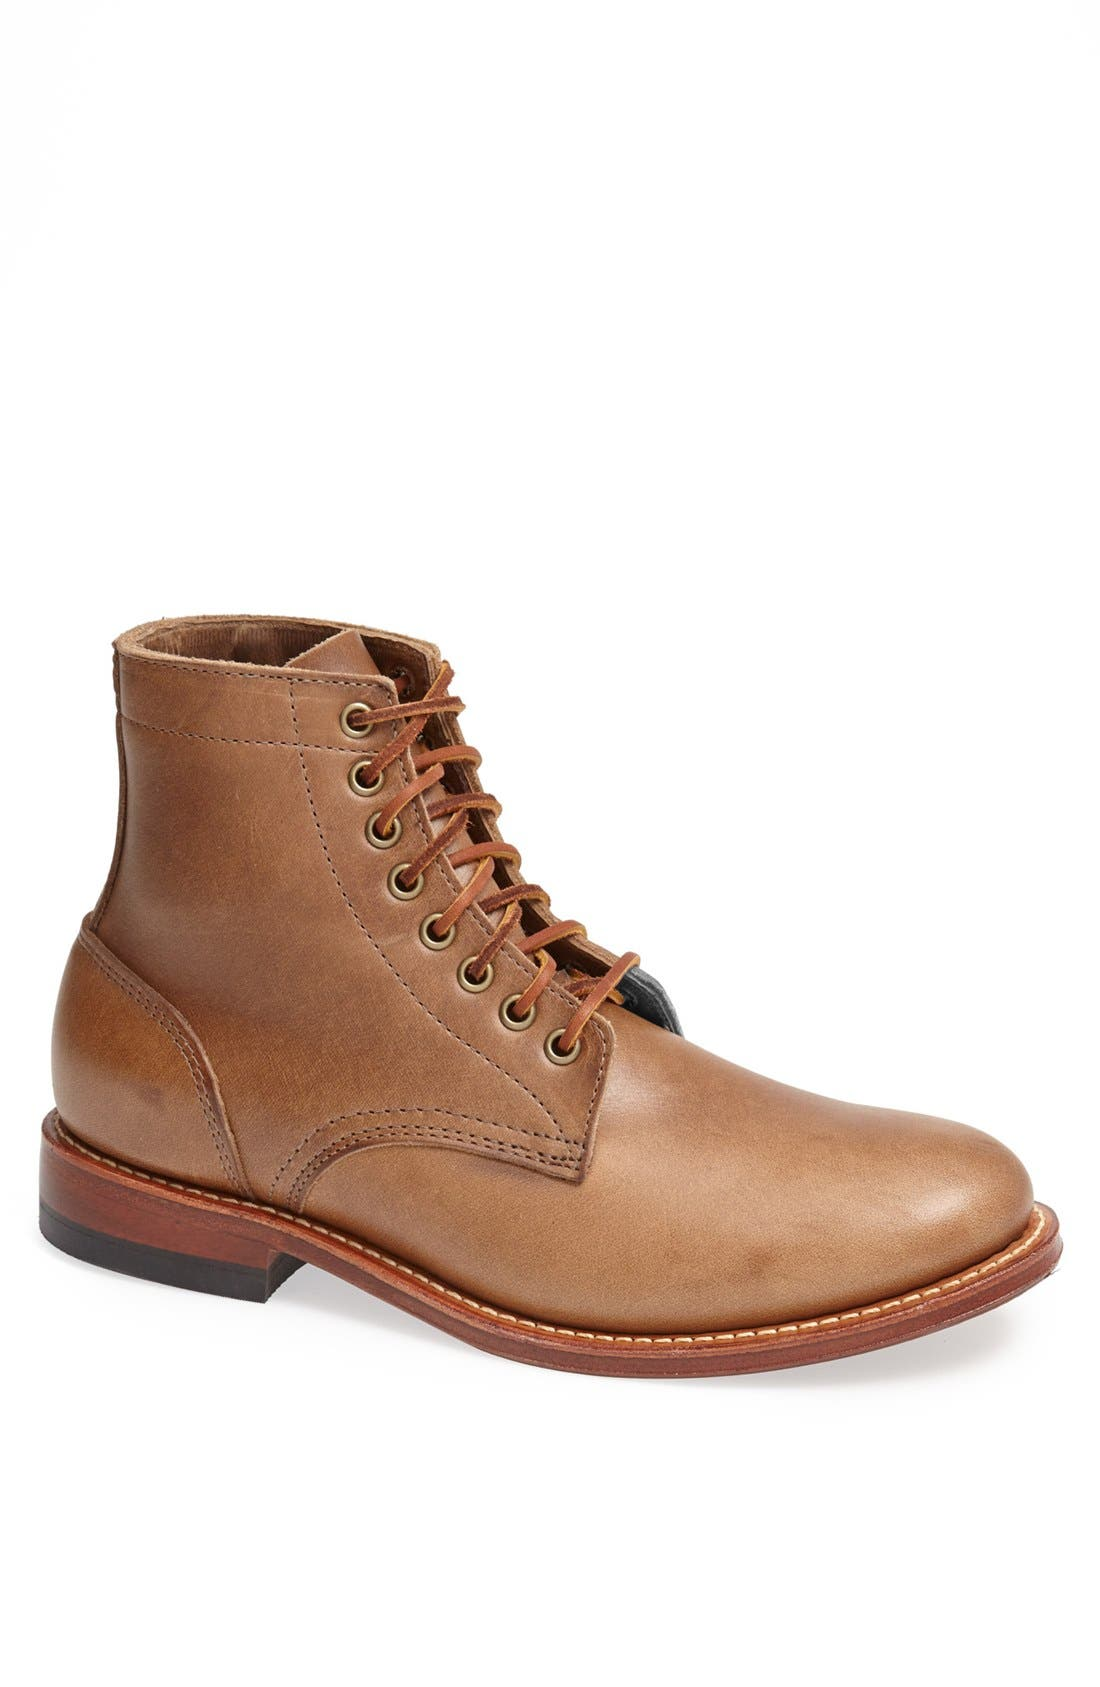 Plain Toe Trench Boot,                         Main,                         color, NATURAL BROWN